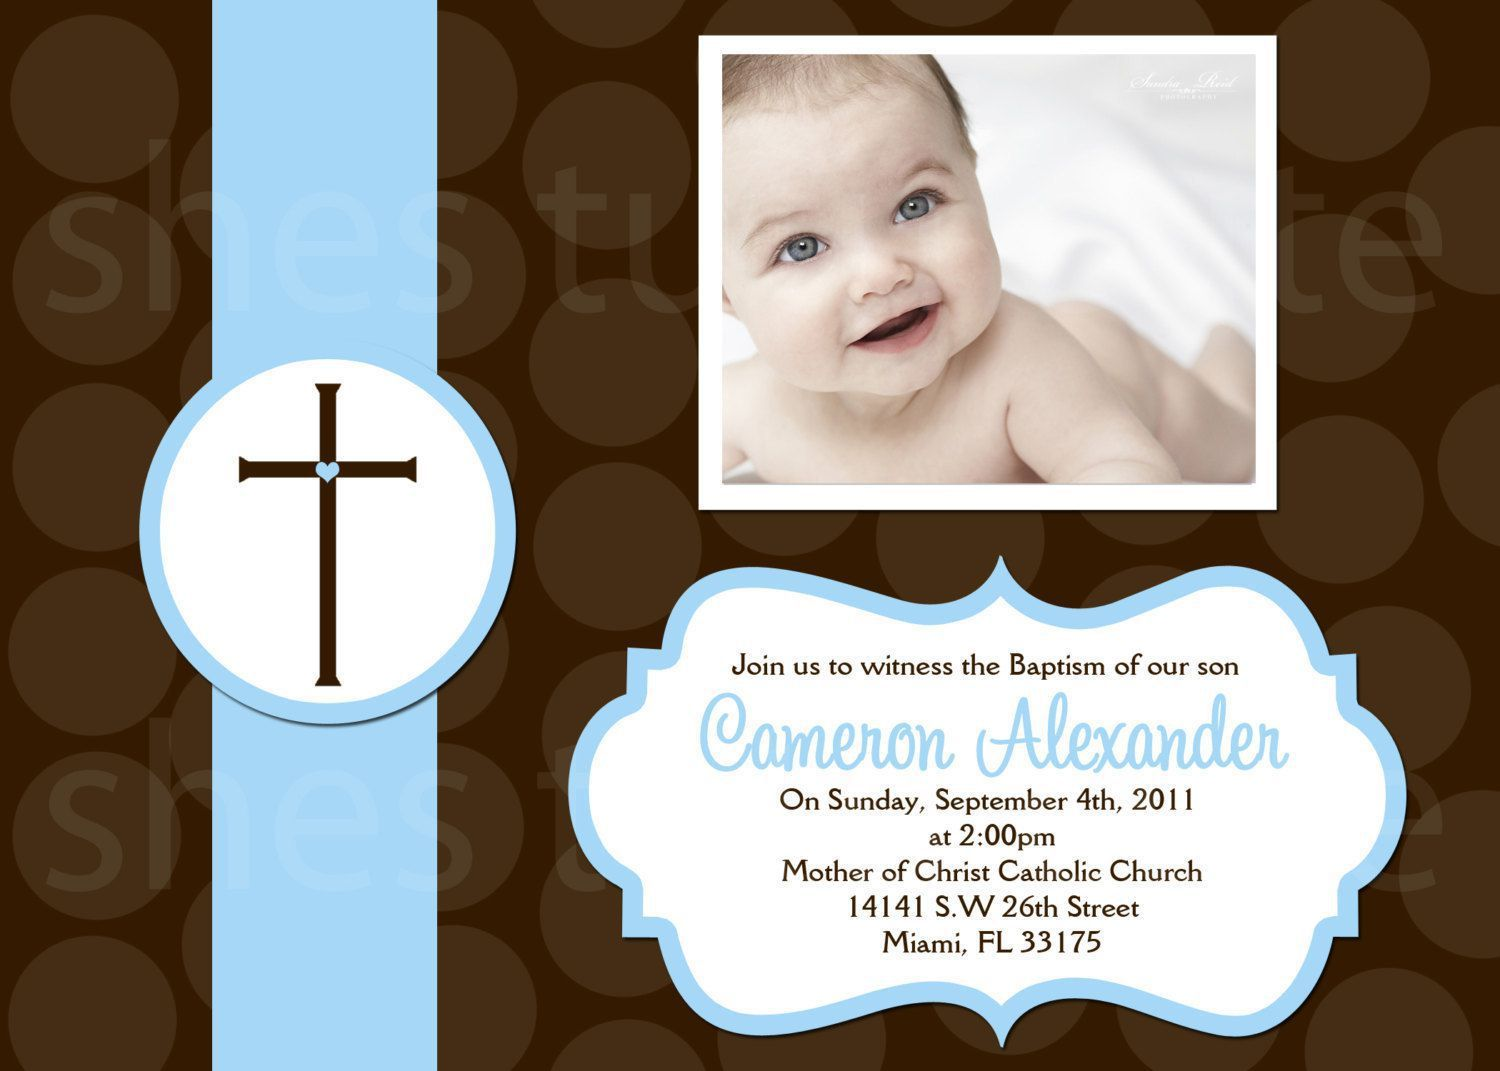 17 Best images about baptism invitations on Pinterest | Spanish ...